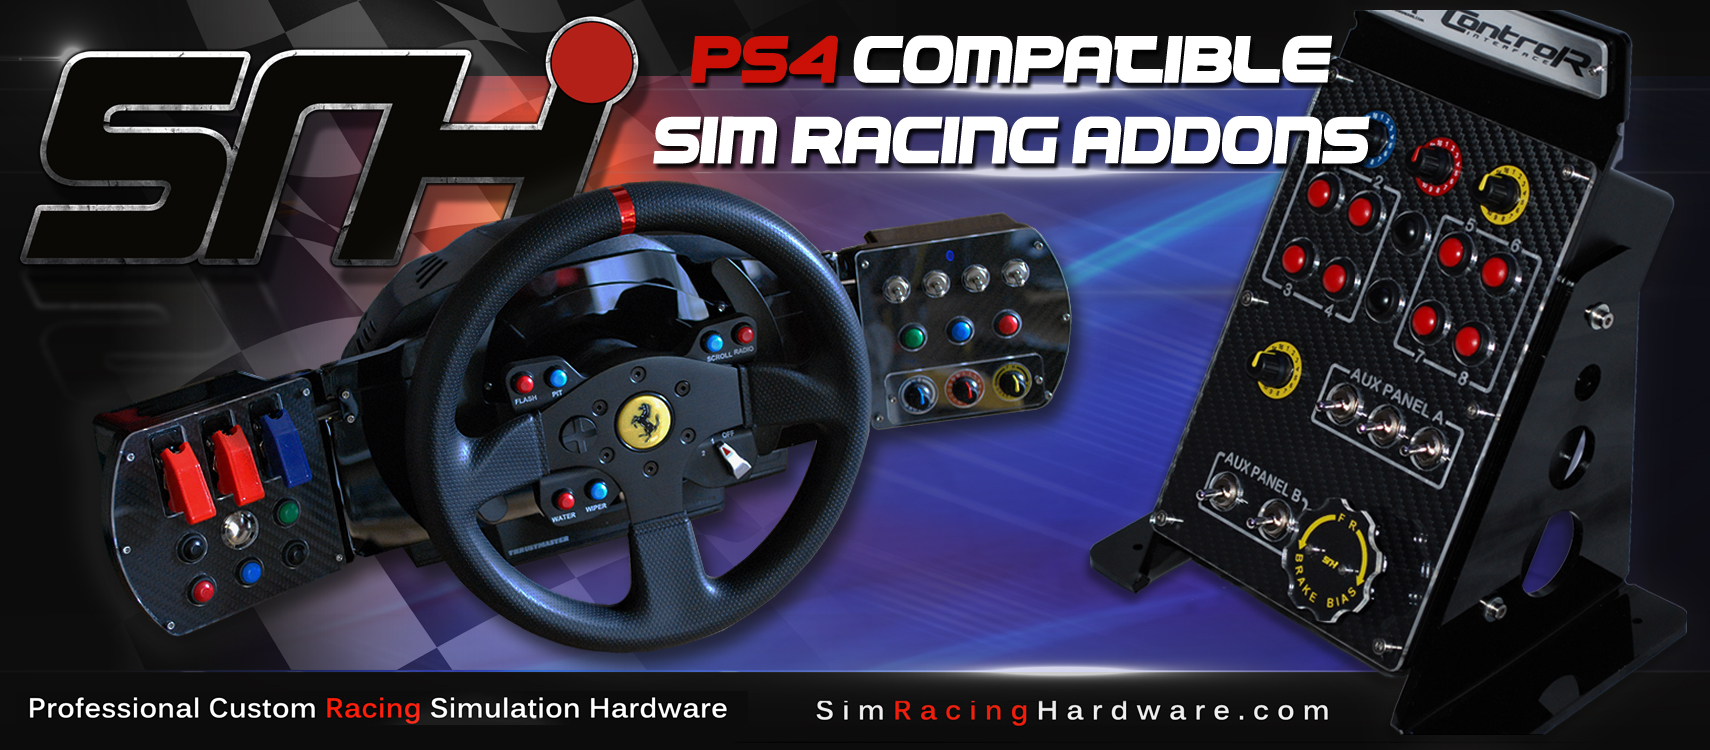 1262713f6fe Sim Racing Hardware design and manufacture cutting edge, high-end  simulation equipment for both Corporate Clients and private enthusiasts.